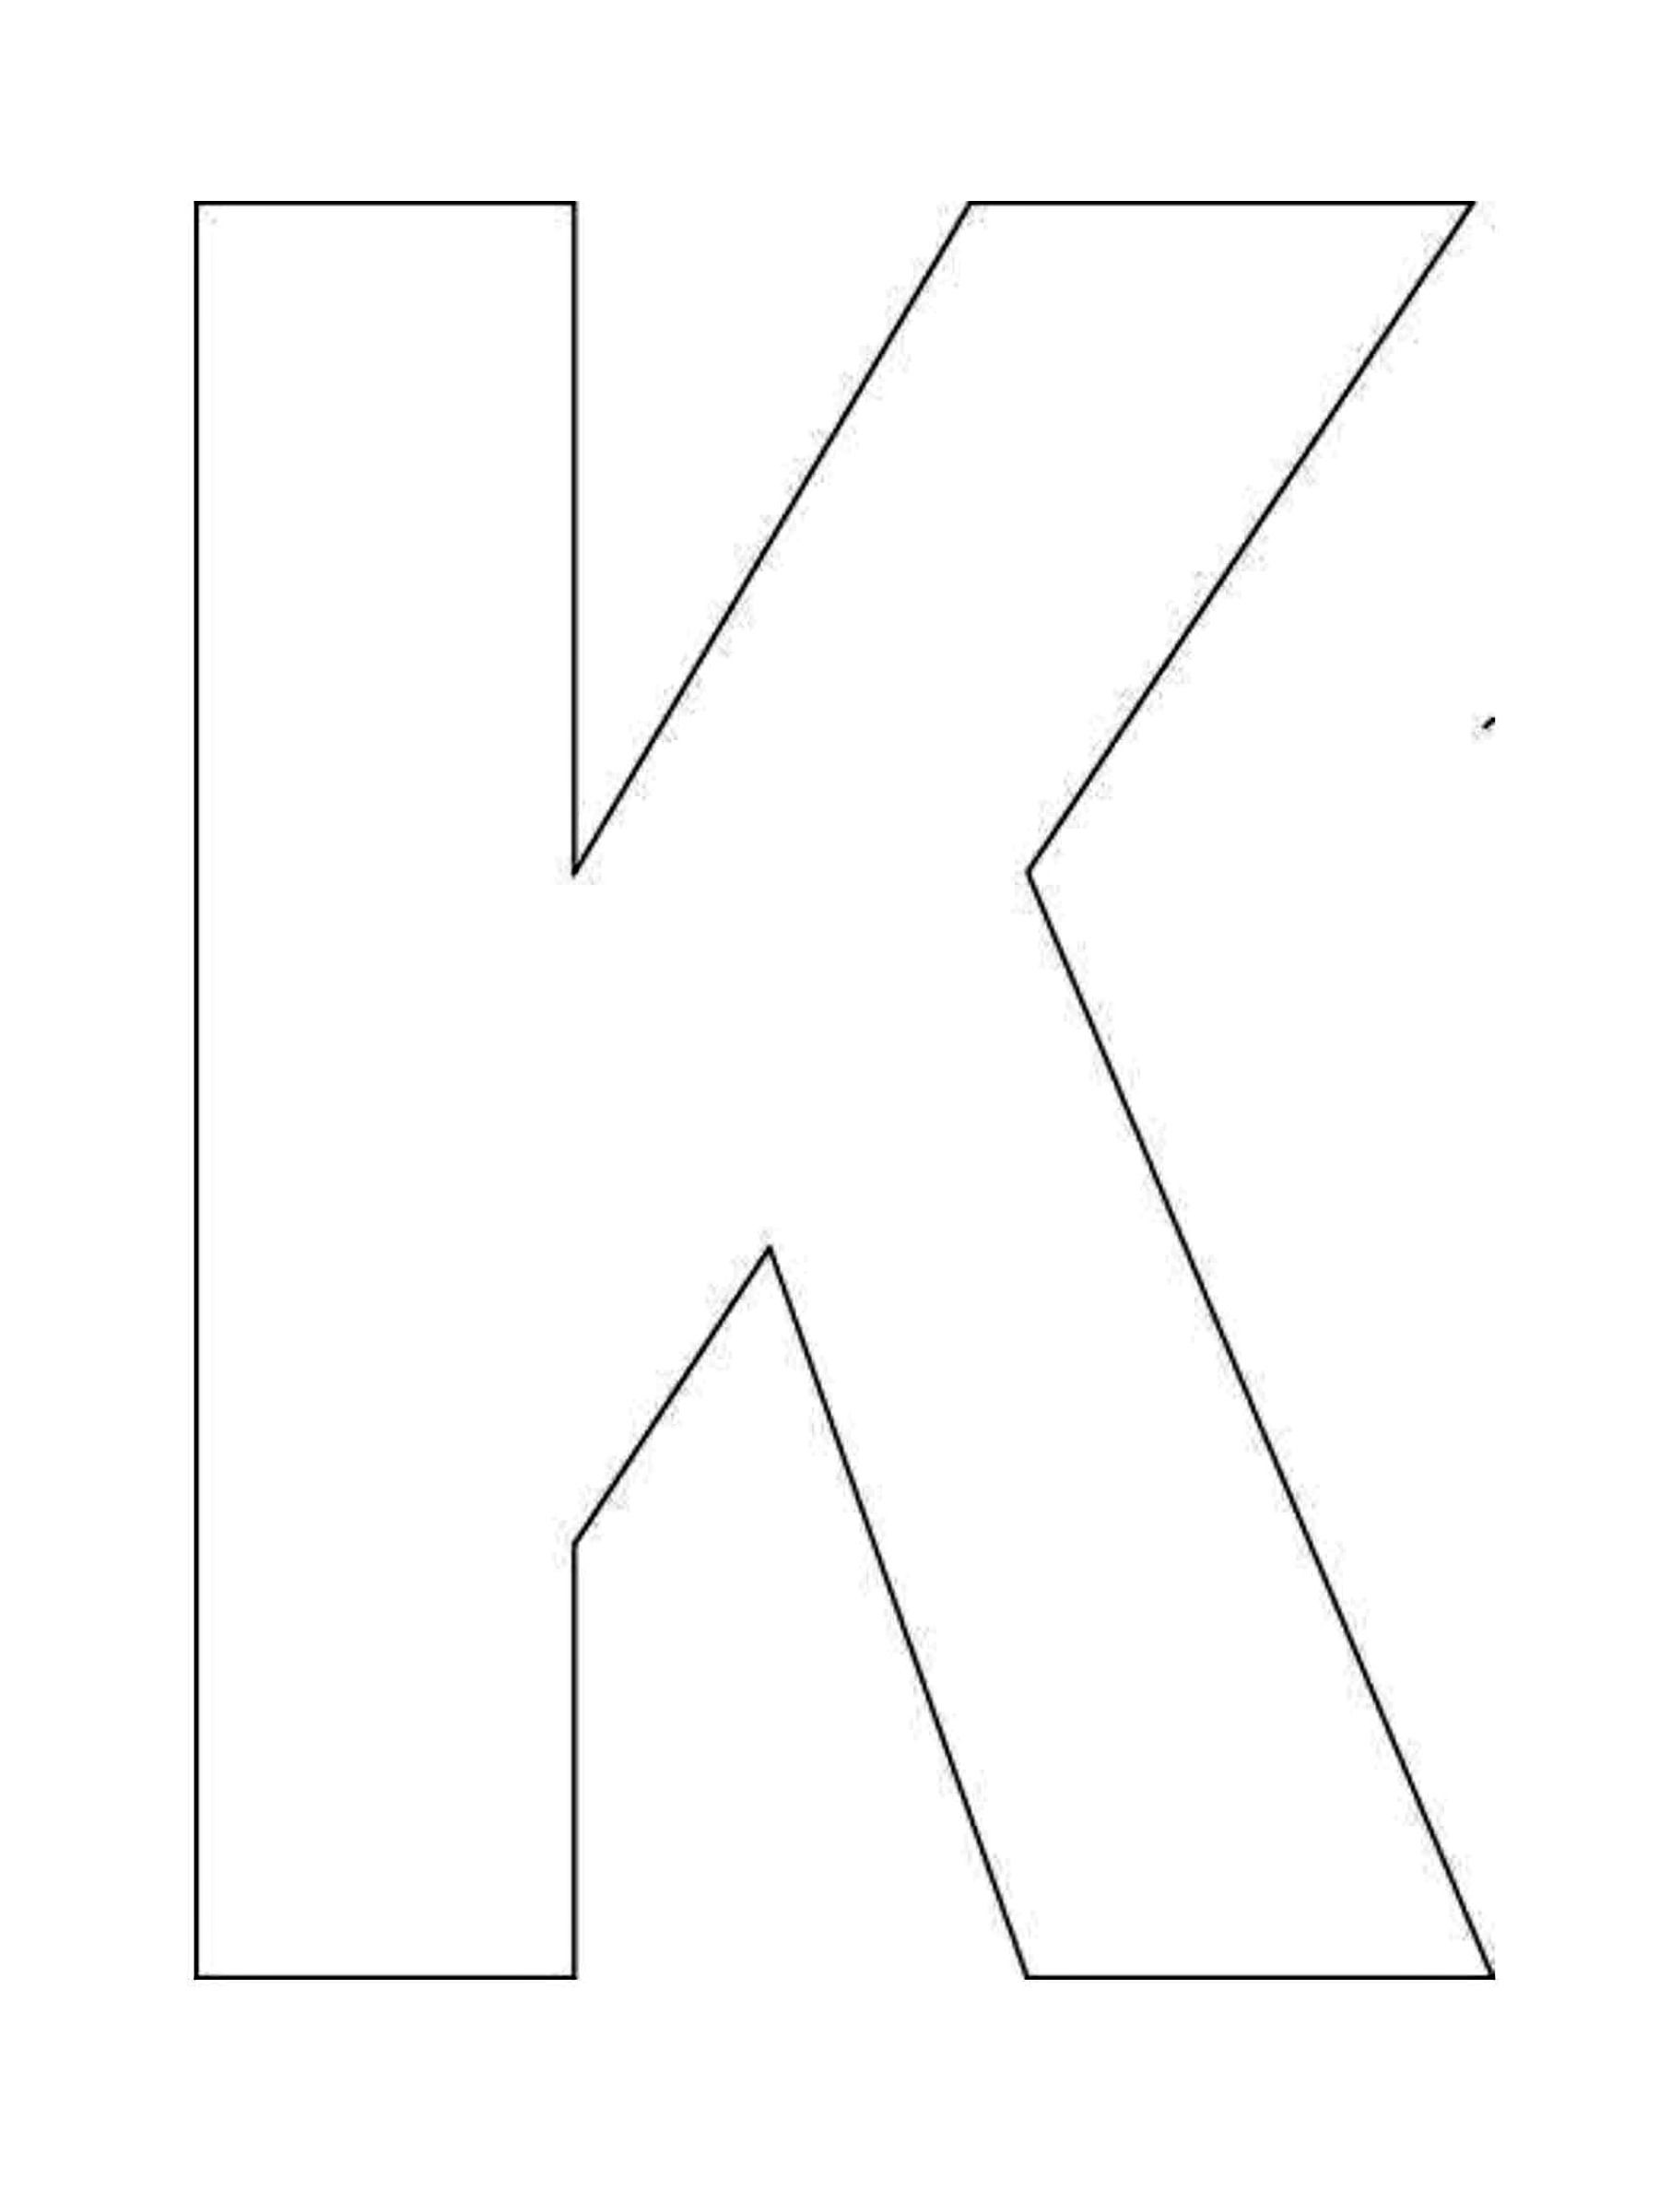 Alphabet-Letter-K-Template-For-Kids.jpg 1,800×2,400 pixels ... on big block letter templates, color letter templates, country letter templates, business letter templates, alphabet letter templates, large letter templates, letter stencil templates, character letter templates, alpha letter templates, printable letter templates, number letter templates,